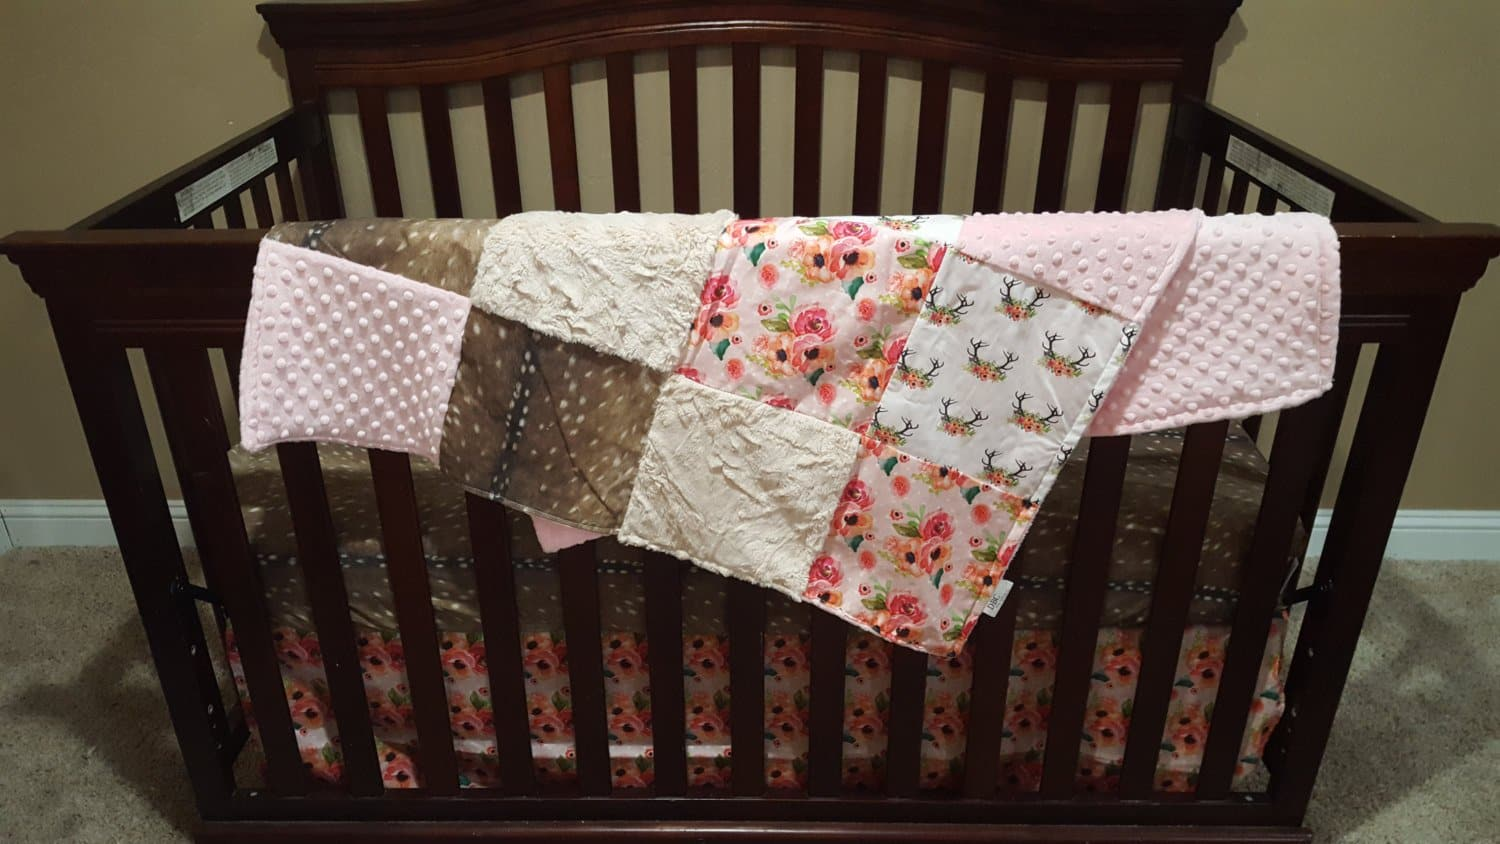 Baby Girl Crib Bedding - Floral Antlers, Deer Skin, Flowers, Ivory Crushed Minky, and Blush Crib Baby Bedding Ensemble